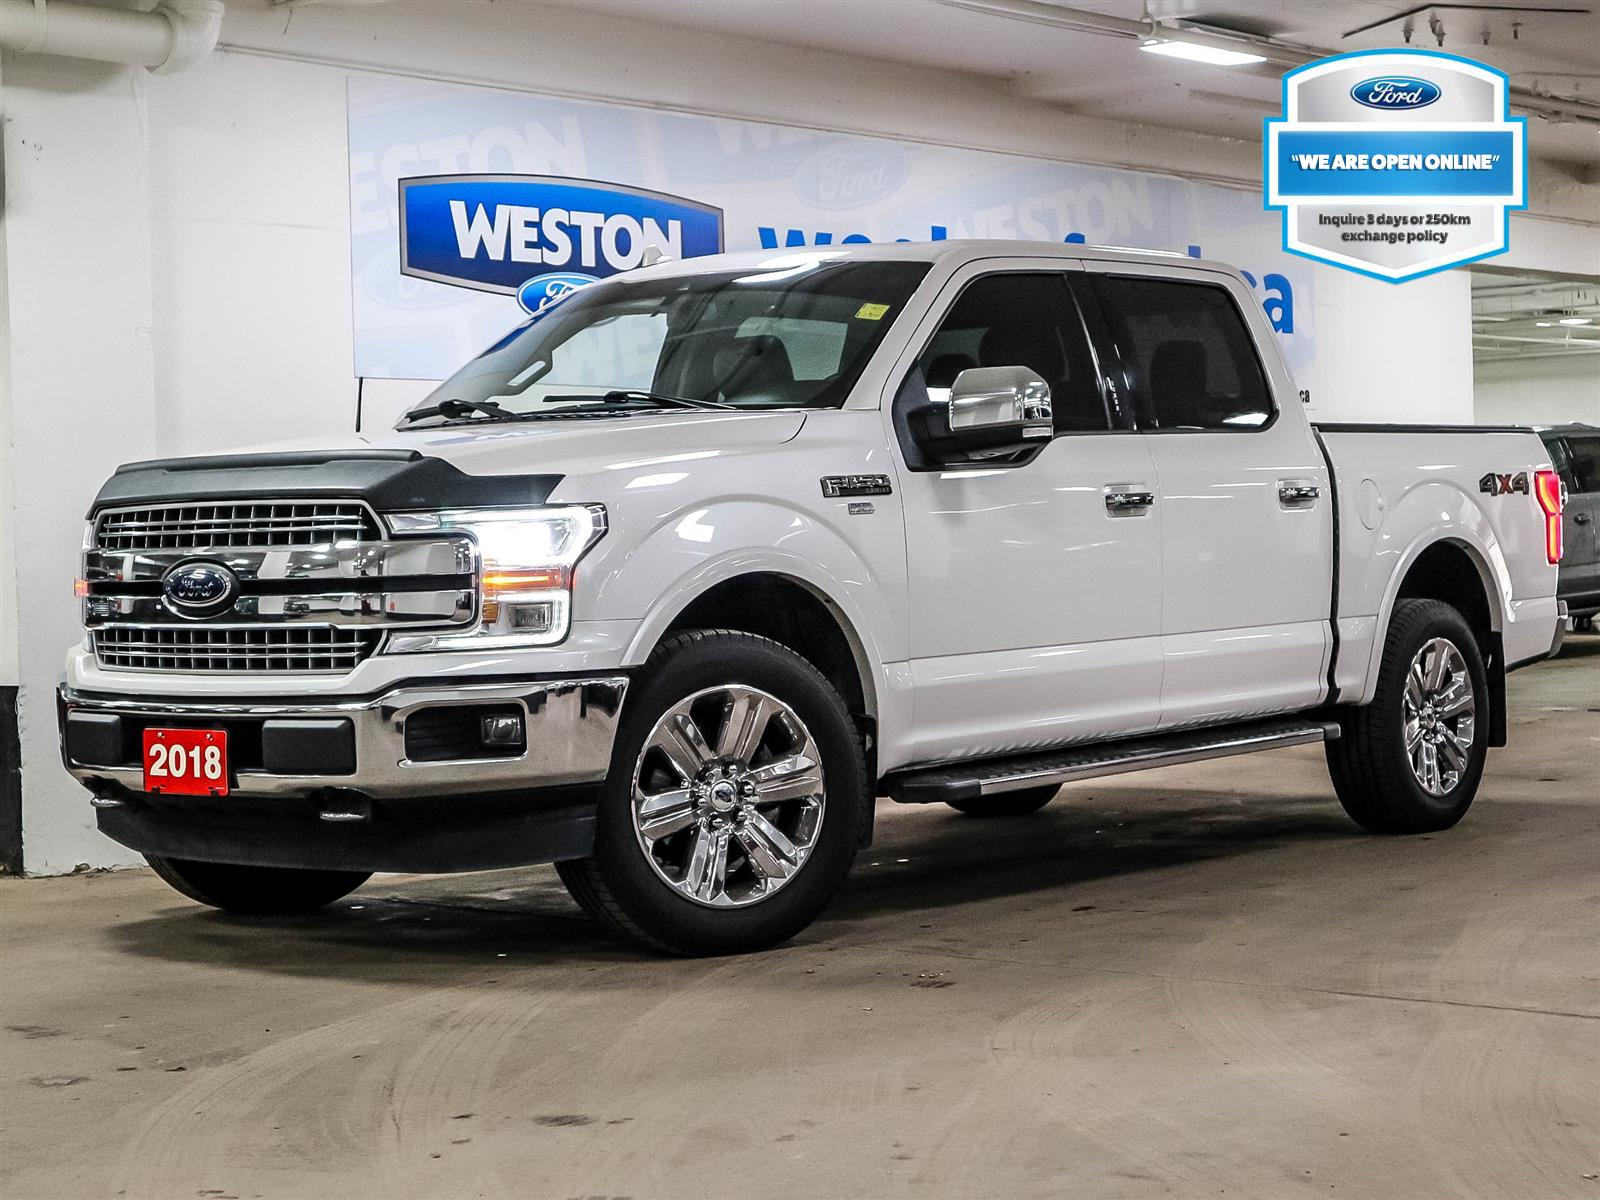 used 2018 Ford F-150 car, priced at $47,488